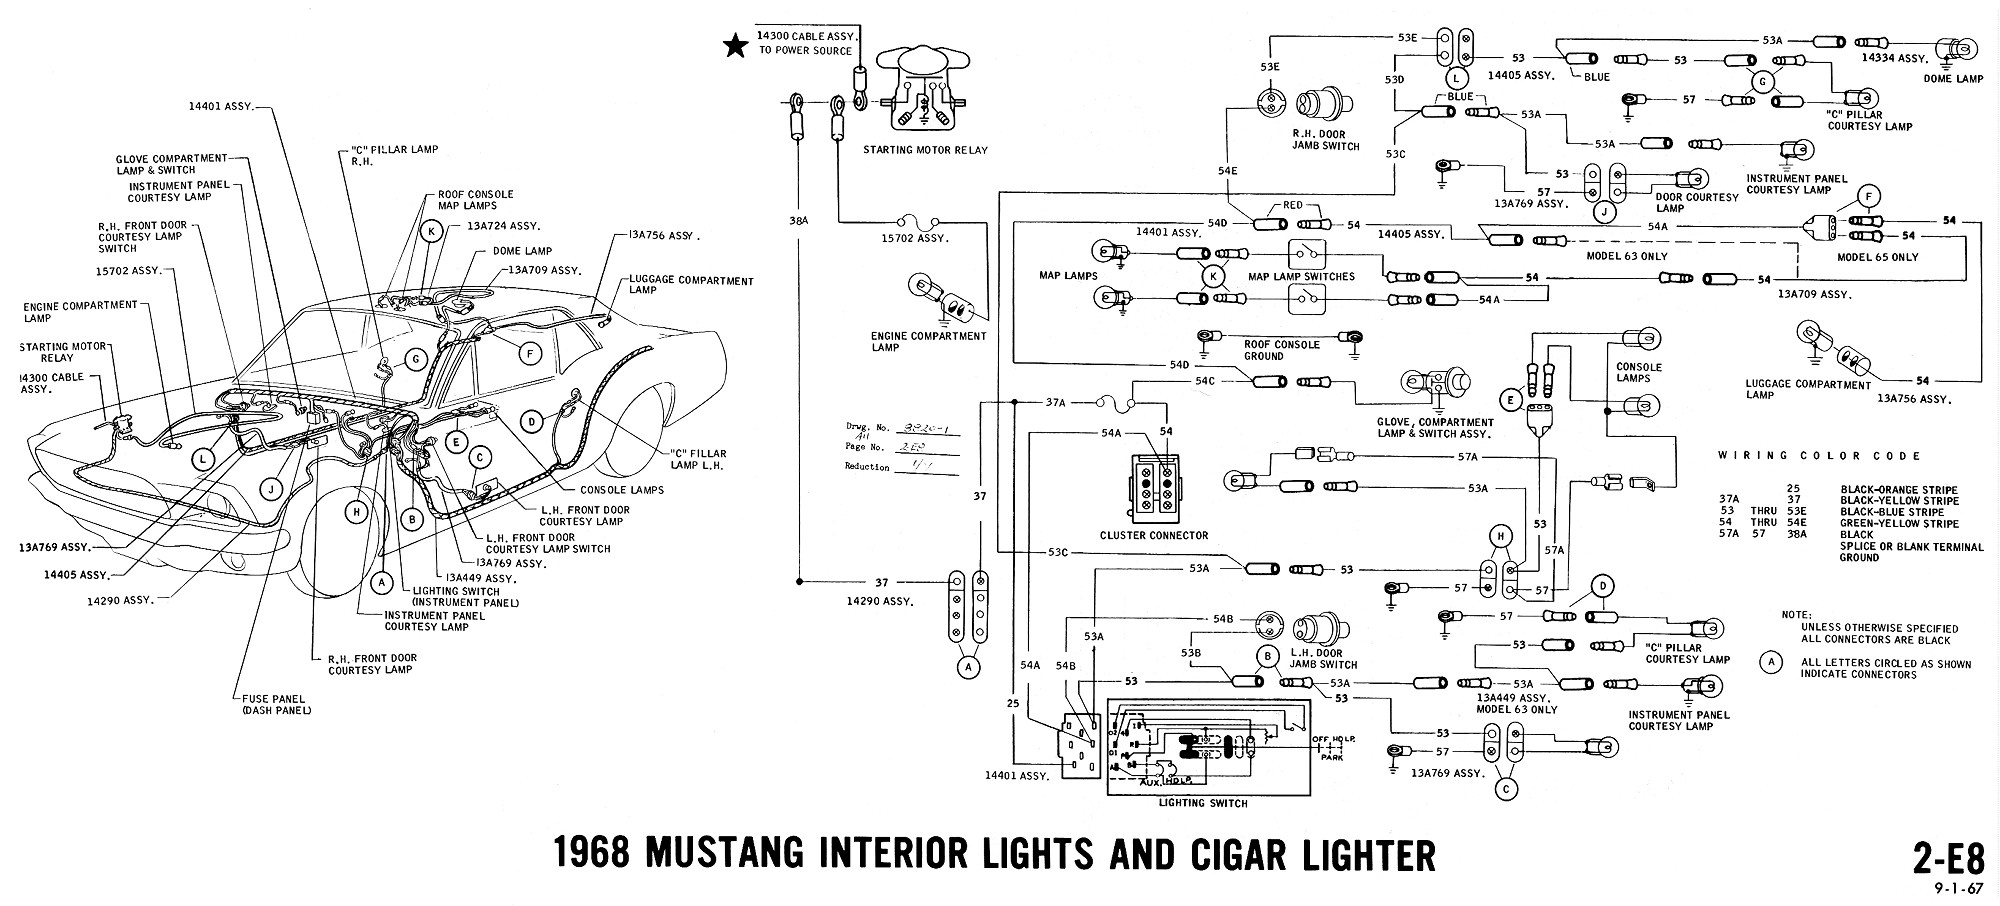 1968 mustang wiring diagram interior lights cigar lighter 2015 mustang wiring diagram schematic mustang 2015 \u2022 free wiring 1966 mustang wiring harness kit at readyjetset.co